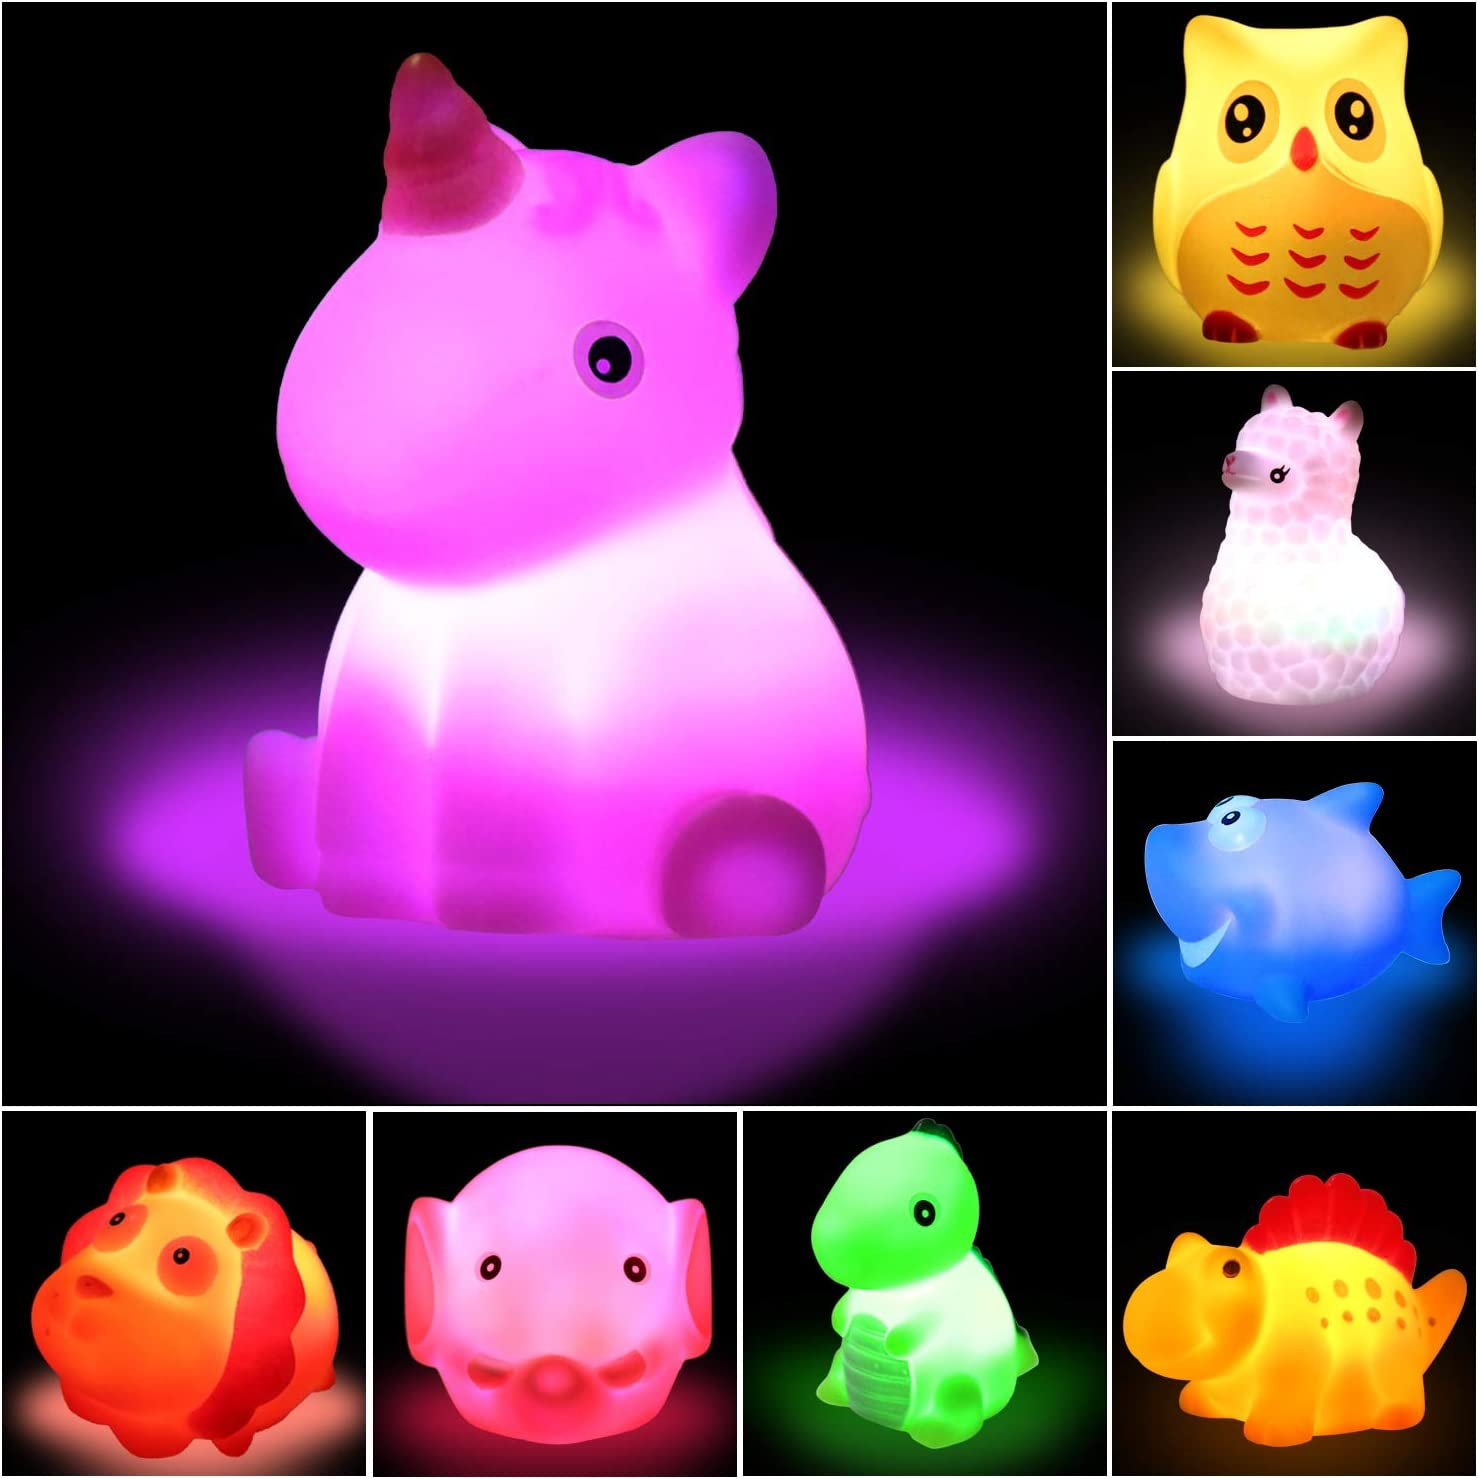 Baby Swimming Pool Toys Early Learning Toys for Baby Infants Kids Toddler 8 Pcs Flashing Color Bathtub Toys Set//Floating Animal Bathroom Toy Lictin Light Up Baby Bath Toys